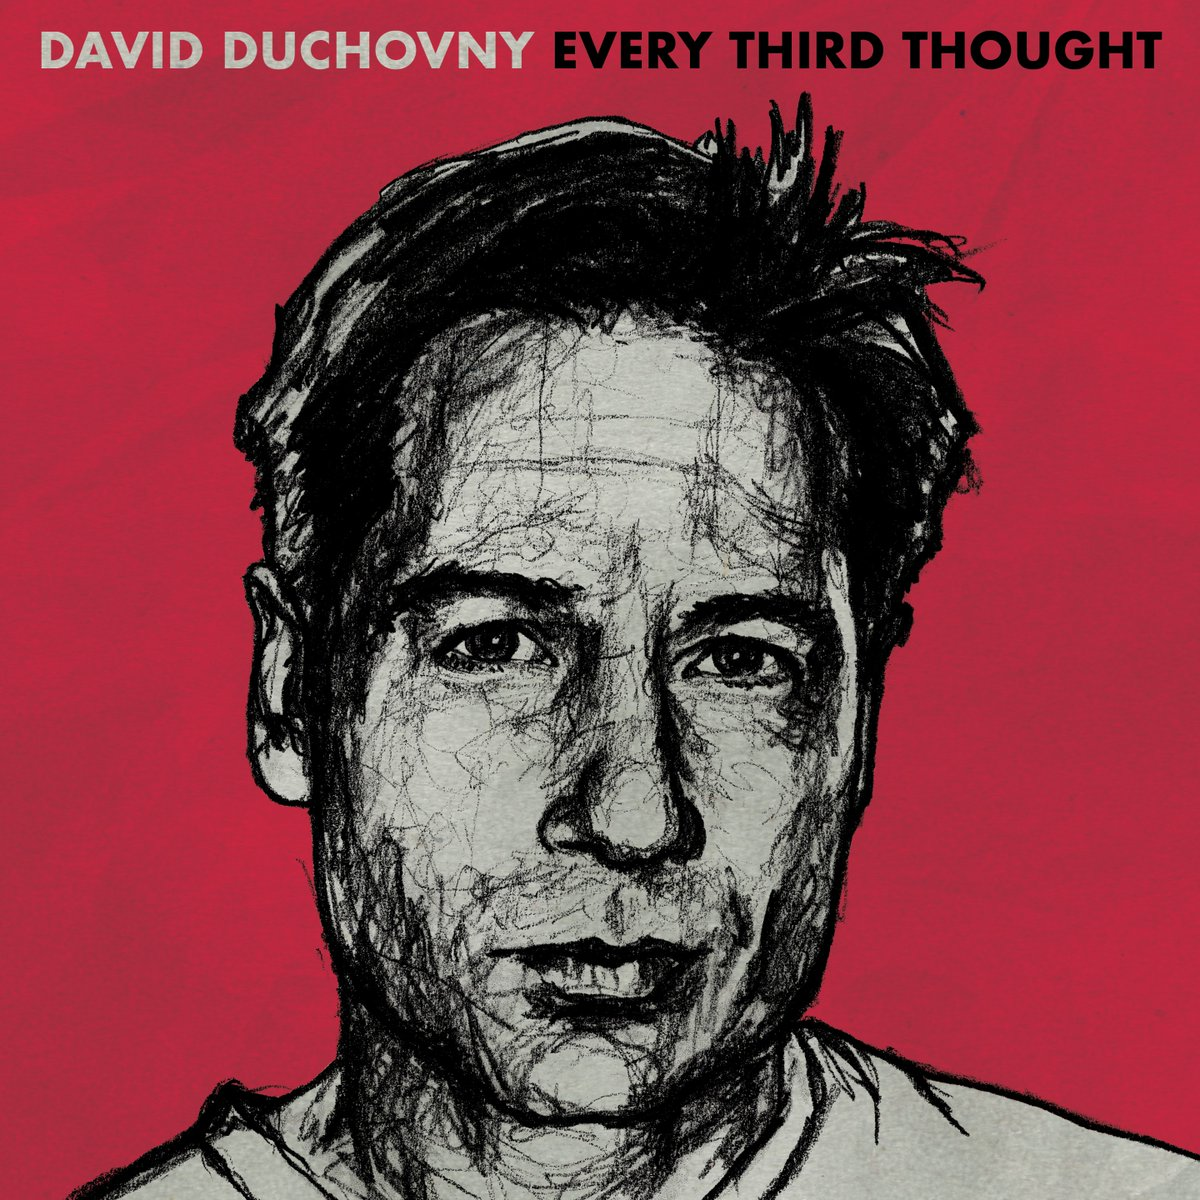 David Duchovny - Every Third Thought (2018)